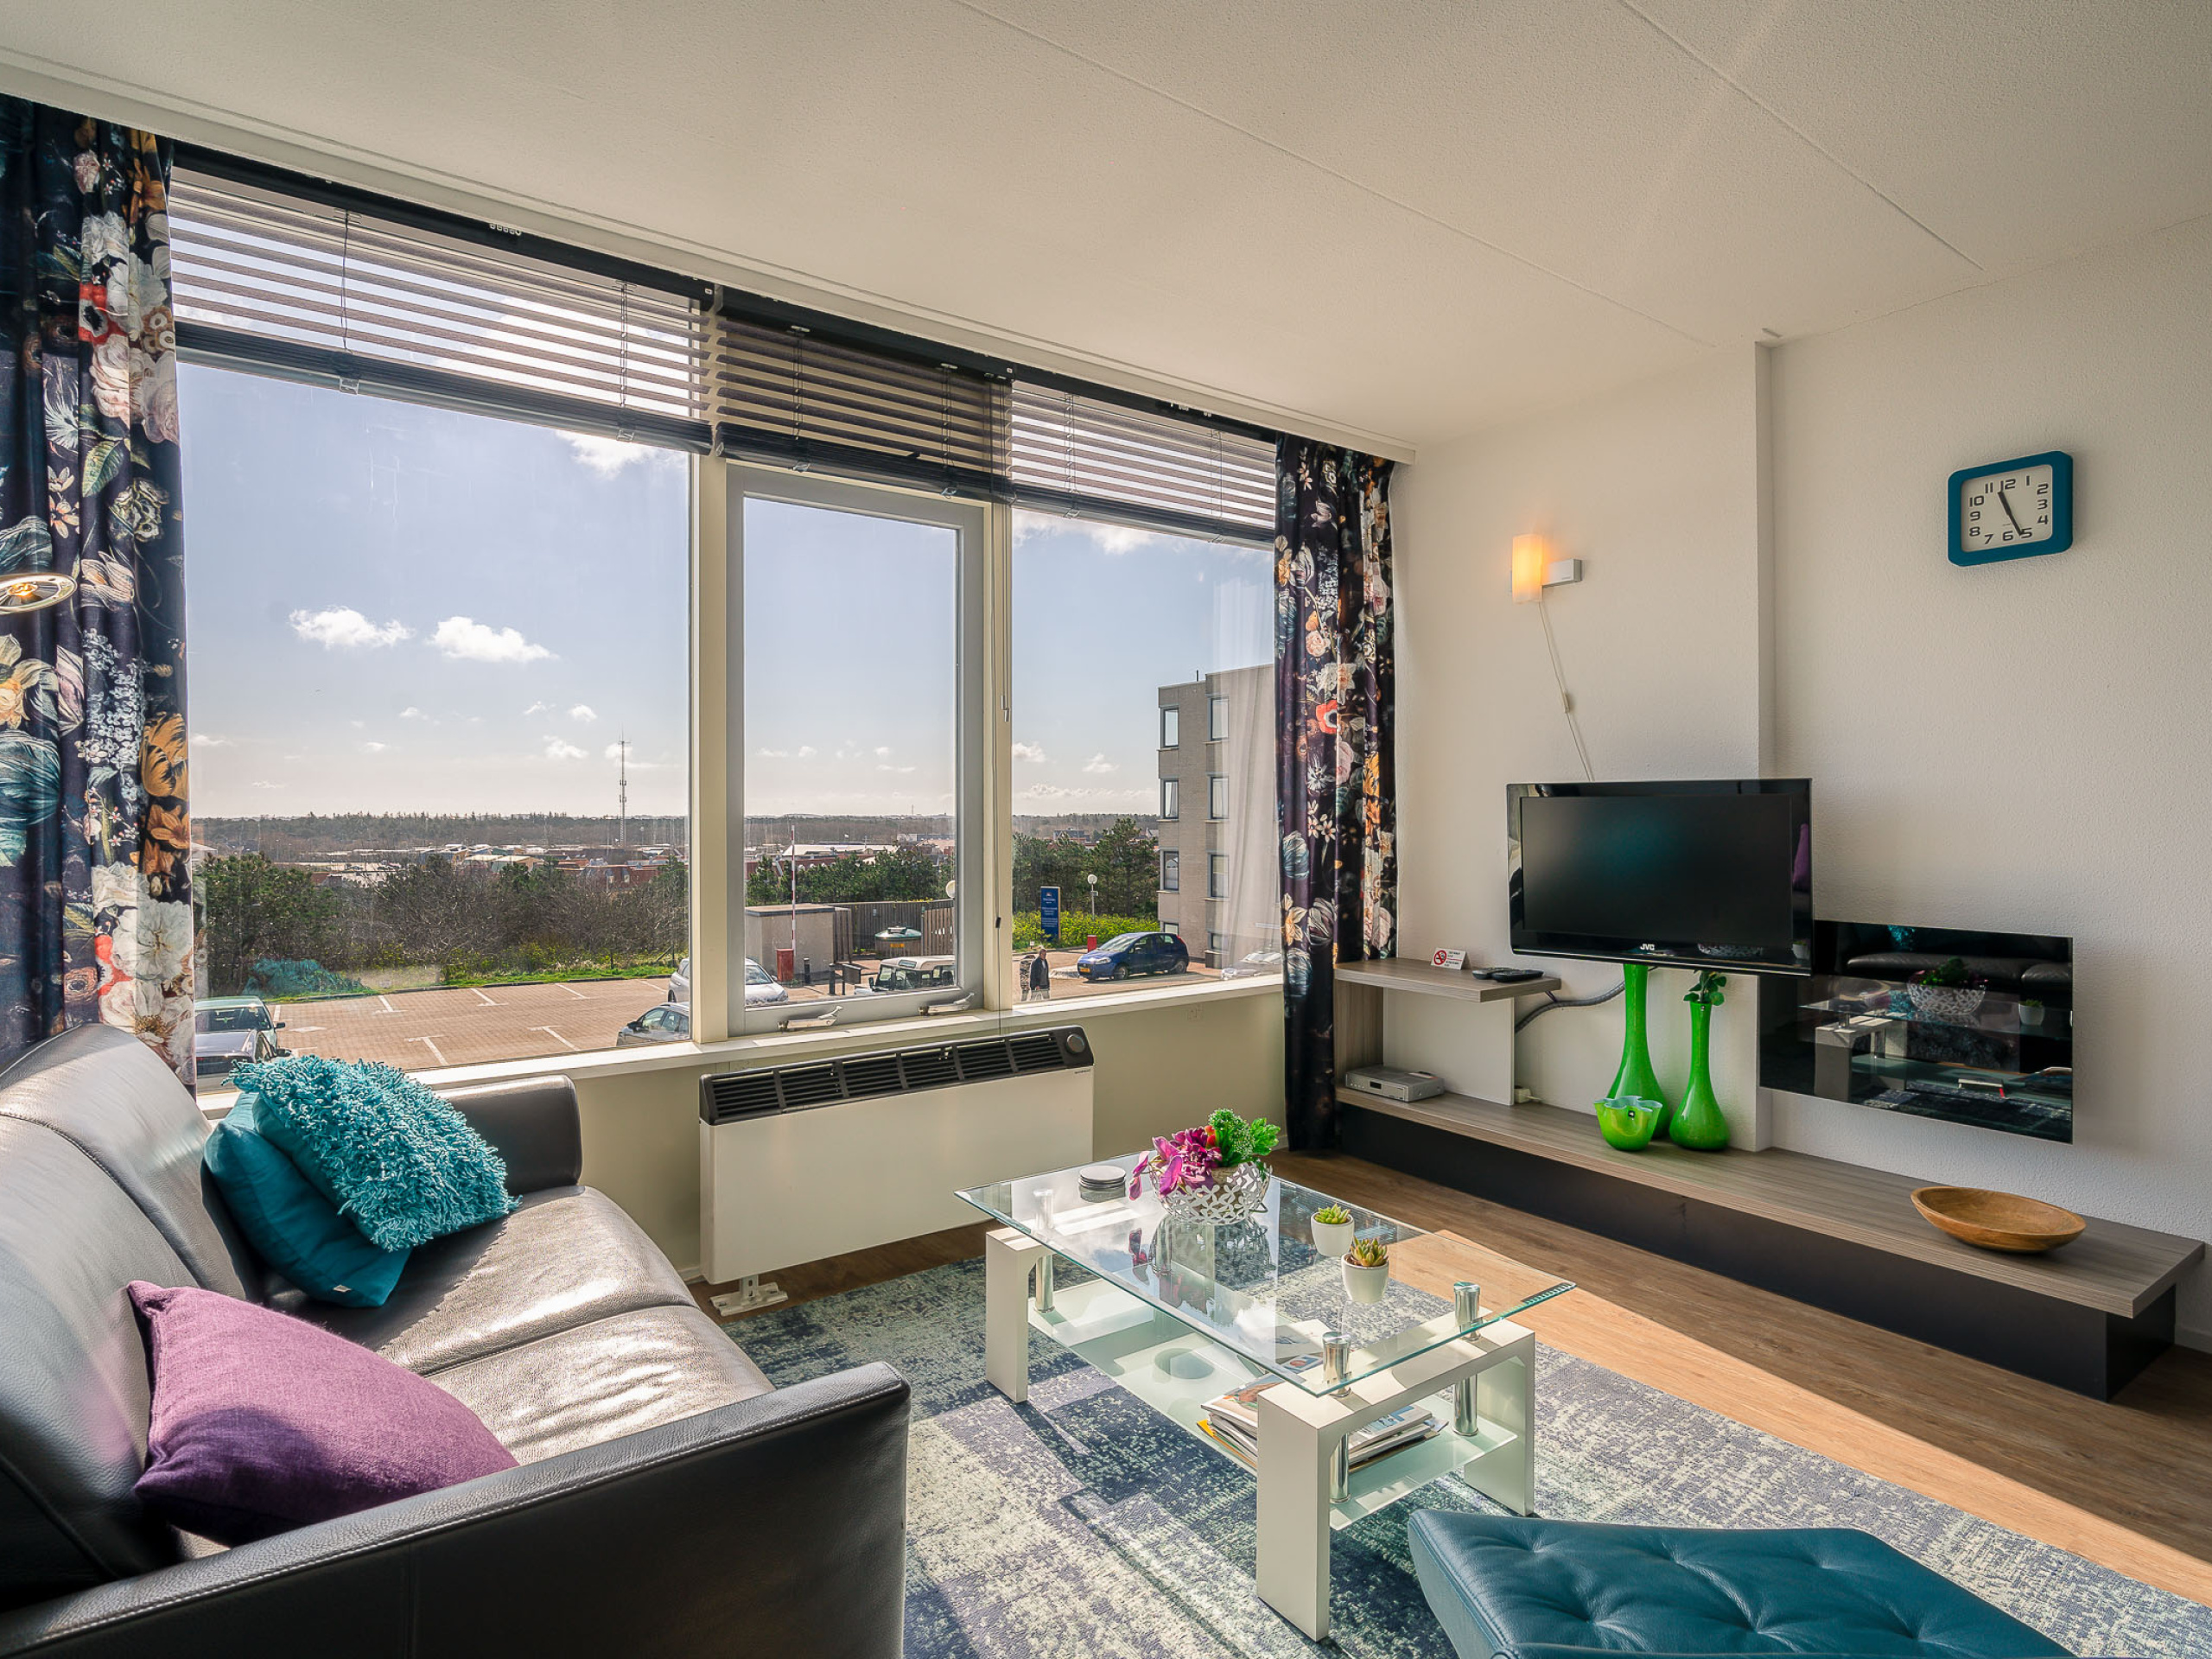 Apartment with views of De Koog and Texel landscape